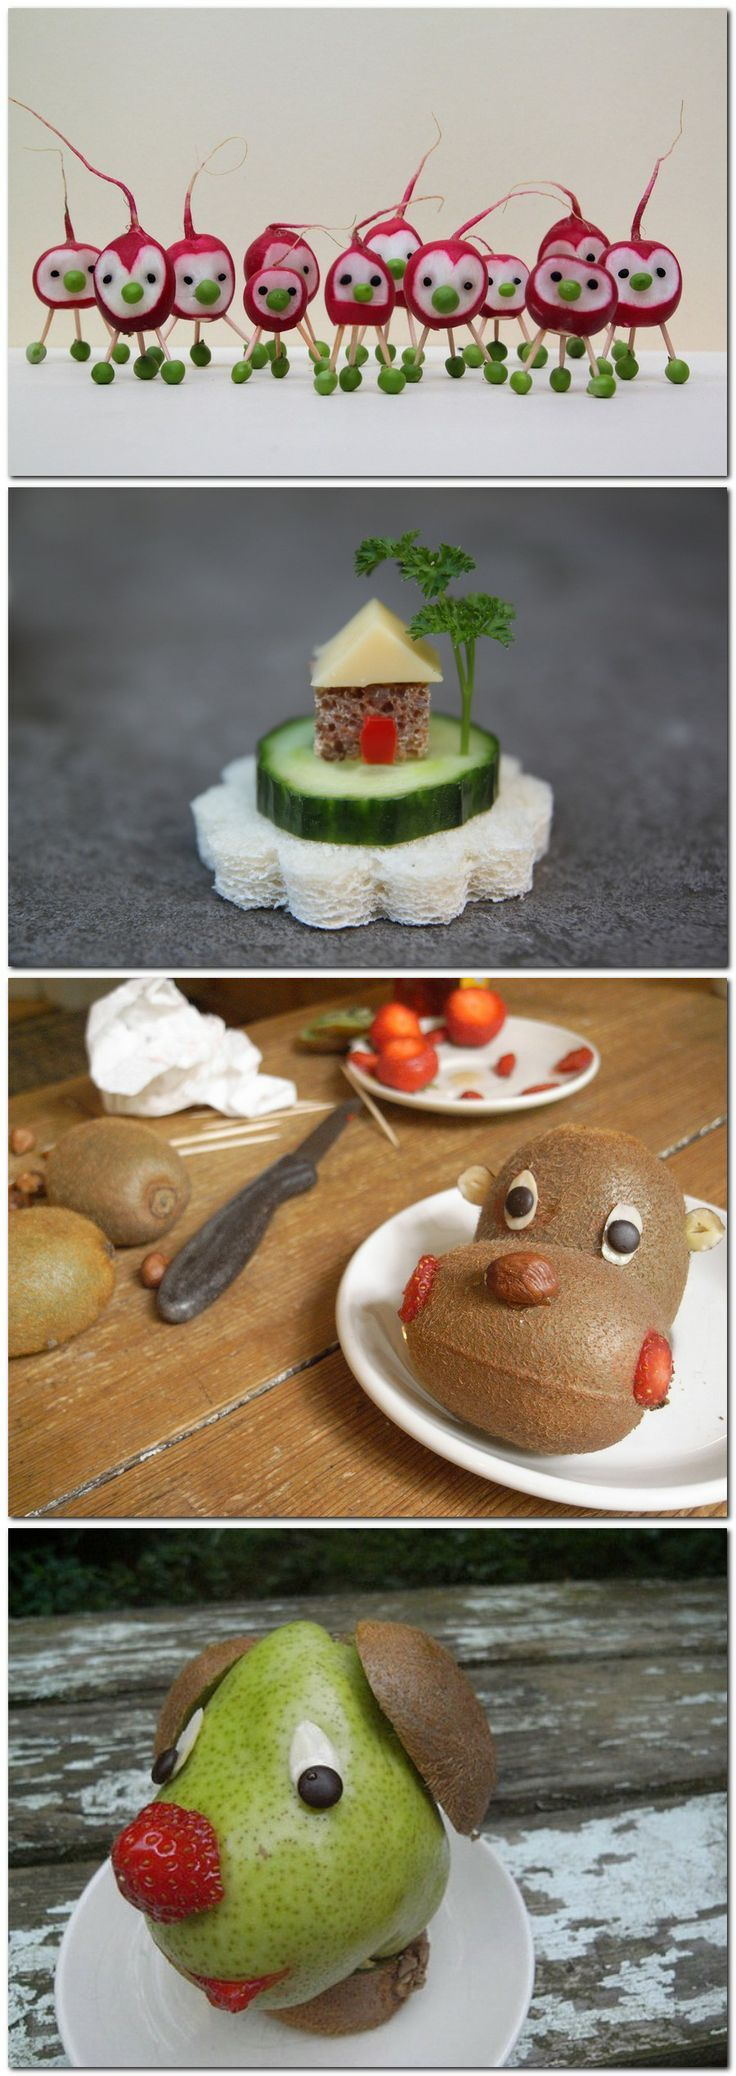 Fun Food by Sabine Timm - Such a fun way for everyone in the family to get more veggies! #snack for #kids.